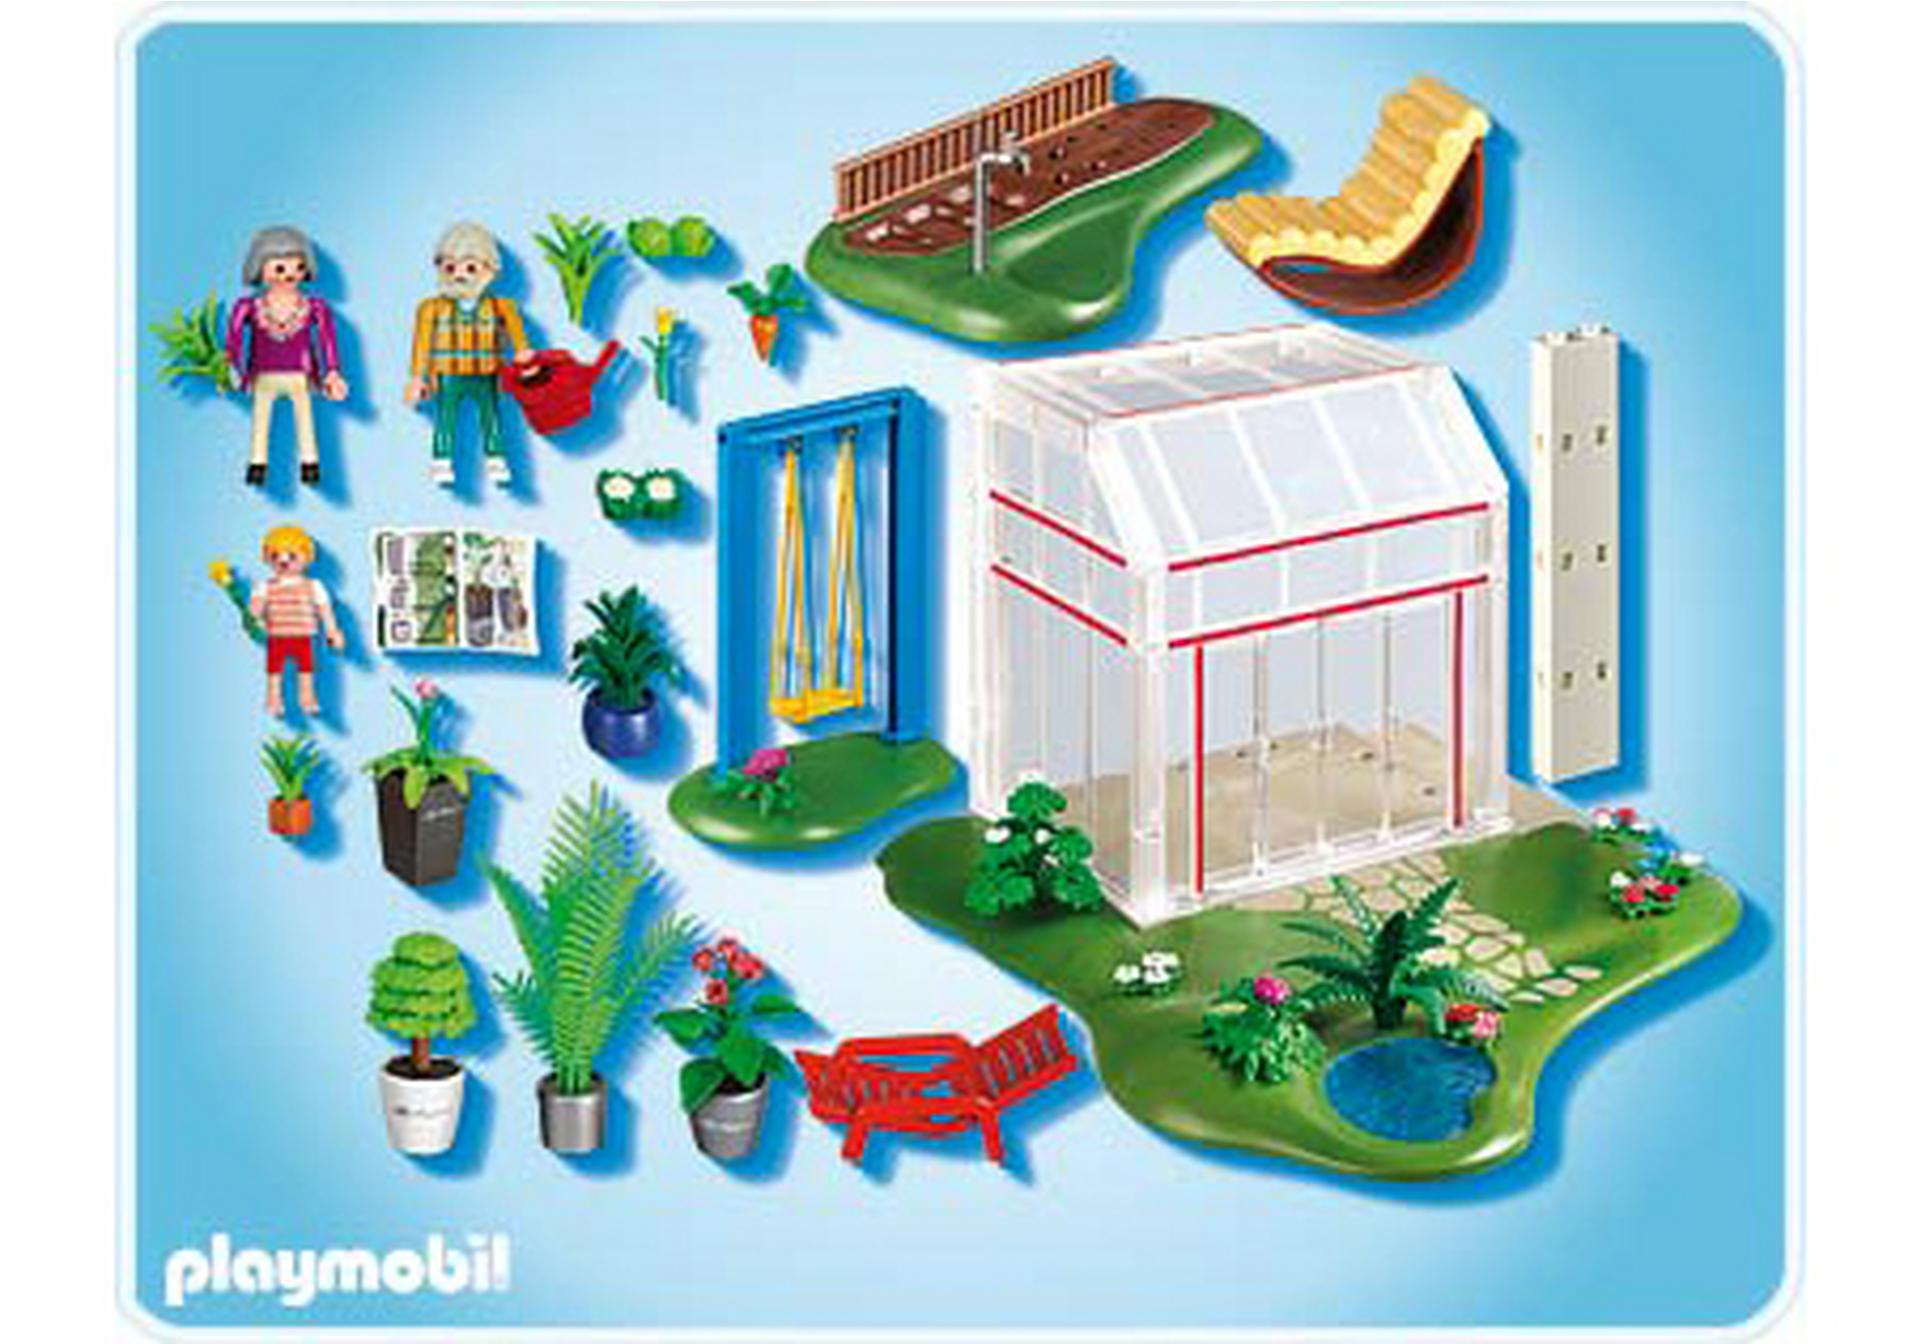 Wintergarten mit sonnenterrasse 4281 a playmobil for 4279 playmobil